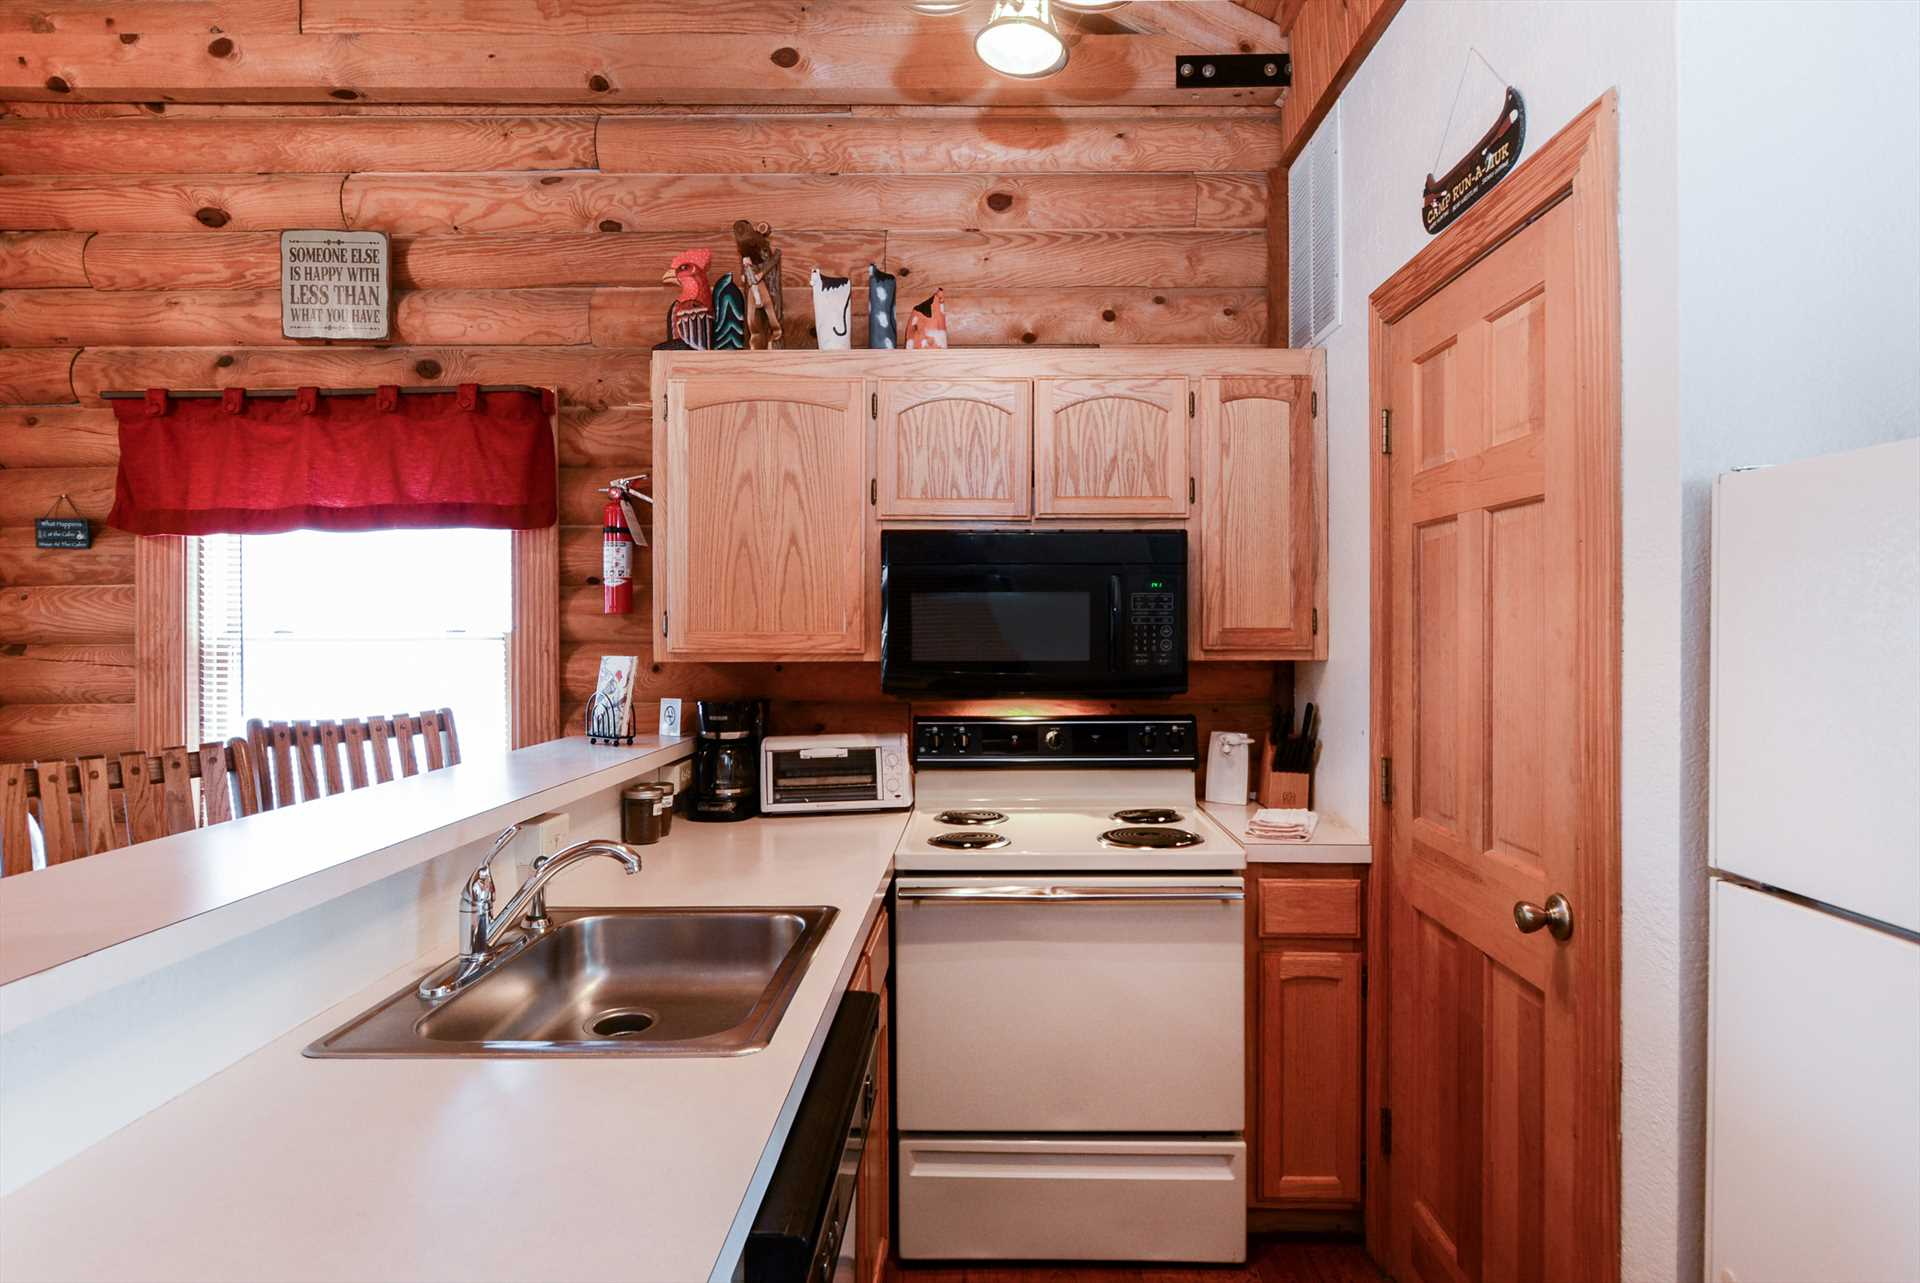 The fully-equipped kitchen is open to the living area.